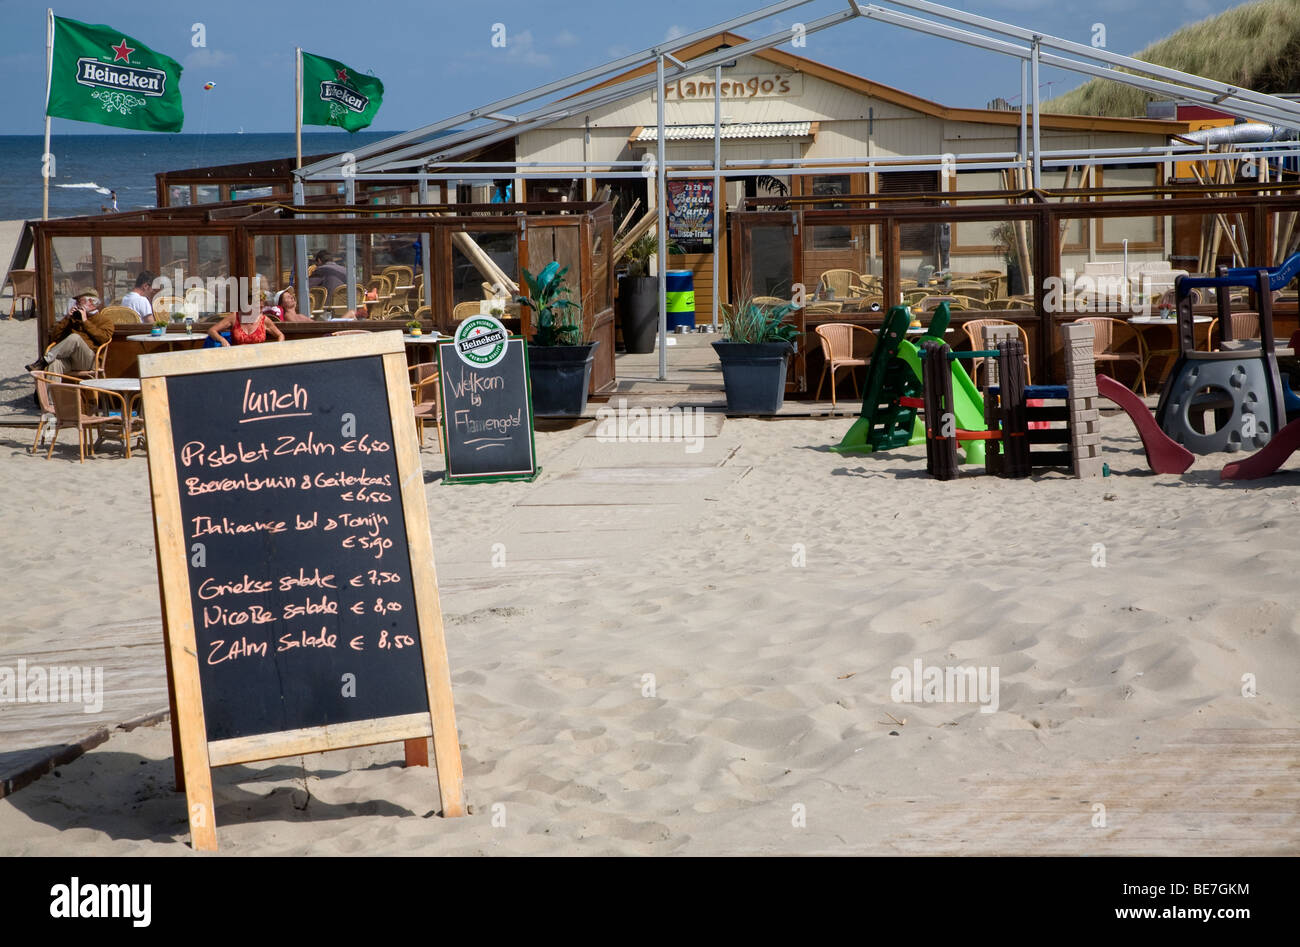 Scheveningen Beach Restaurants Scheveningen Cafe Stockfotos Scheveningen Cafe Bilder Alamy